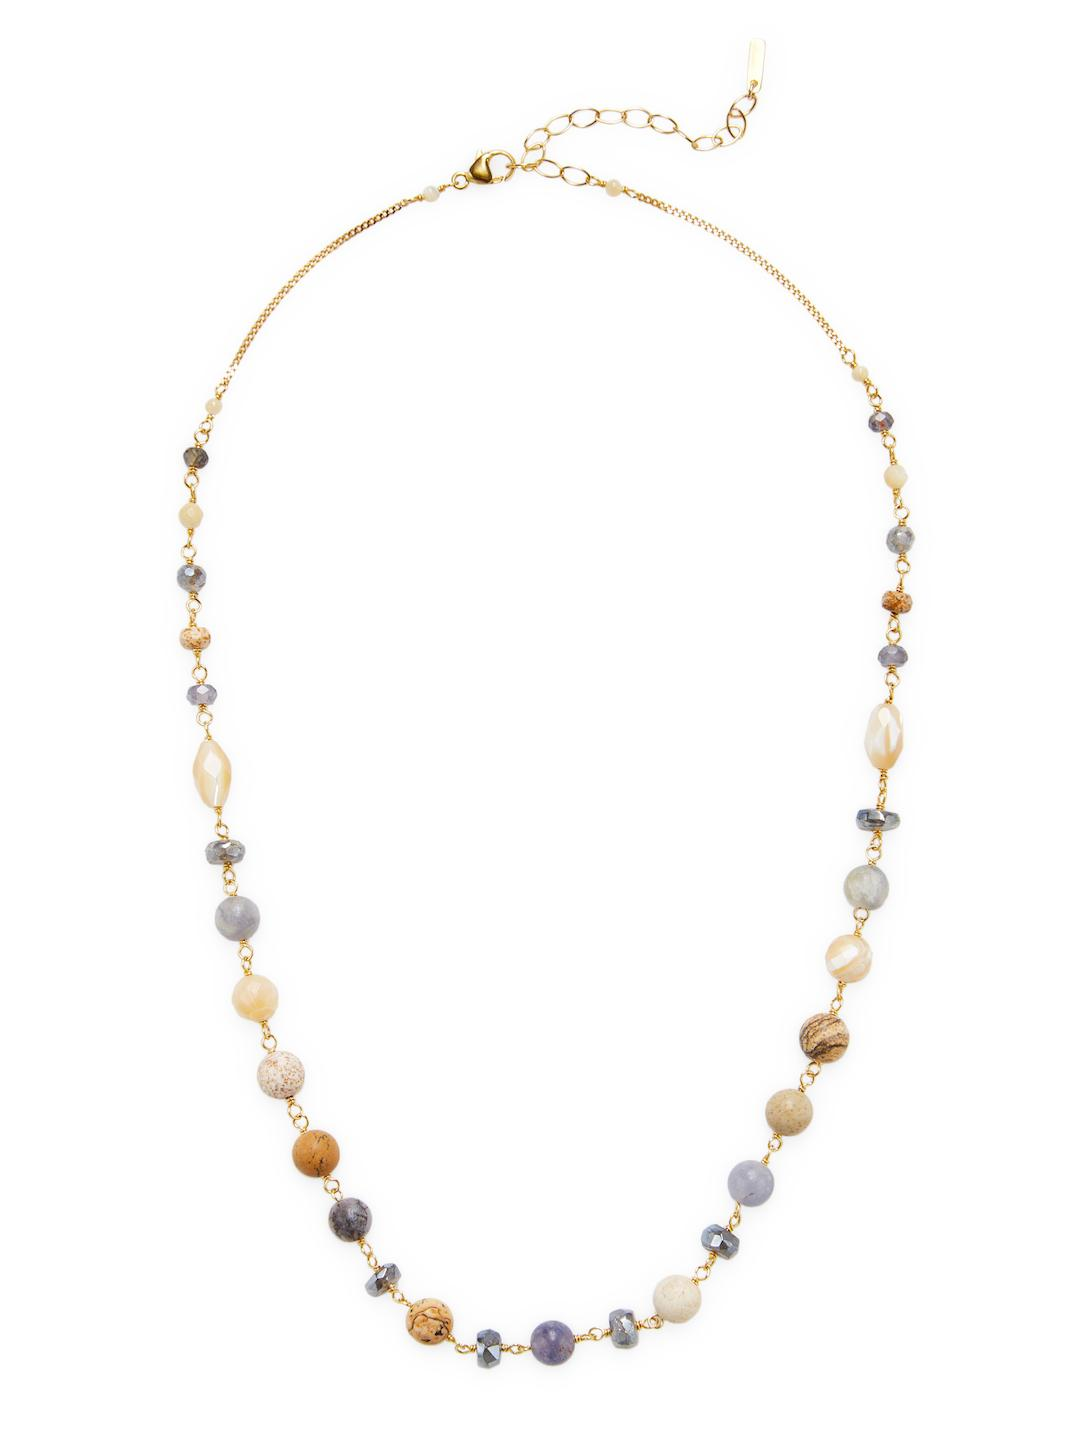 Chan Luu 18K Gold Plated Fringe Necklace with Semi Precious Stones (Iolite Mix) Necklace vHOyh